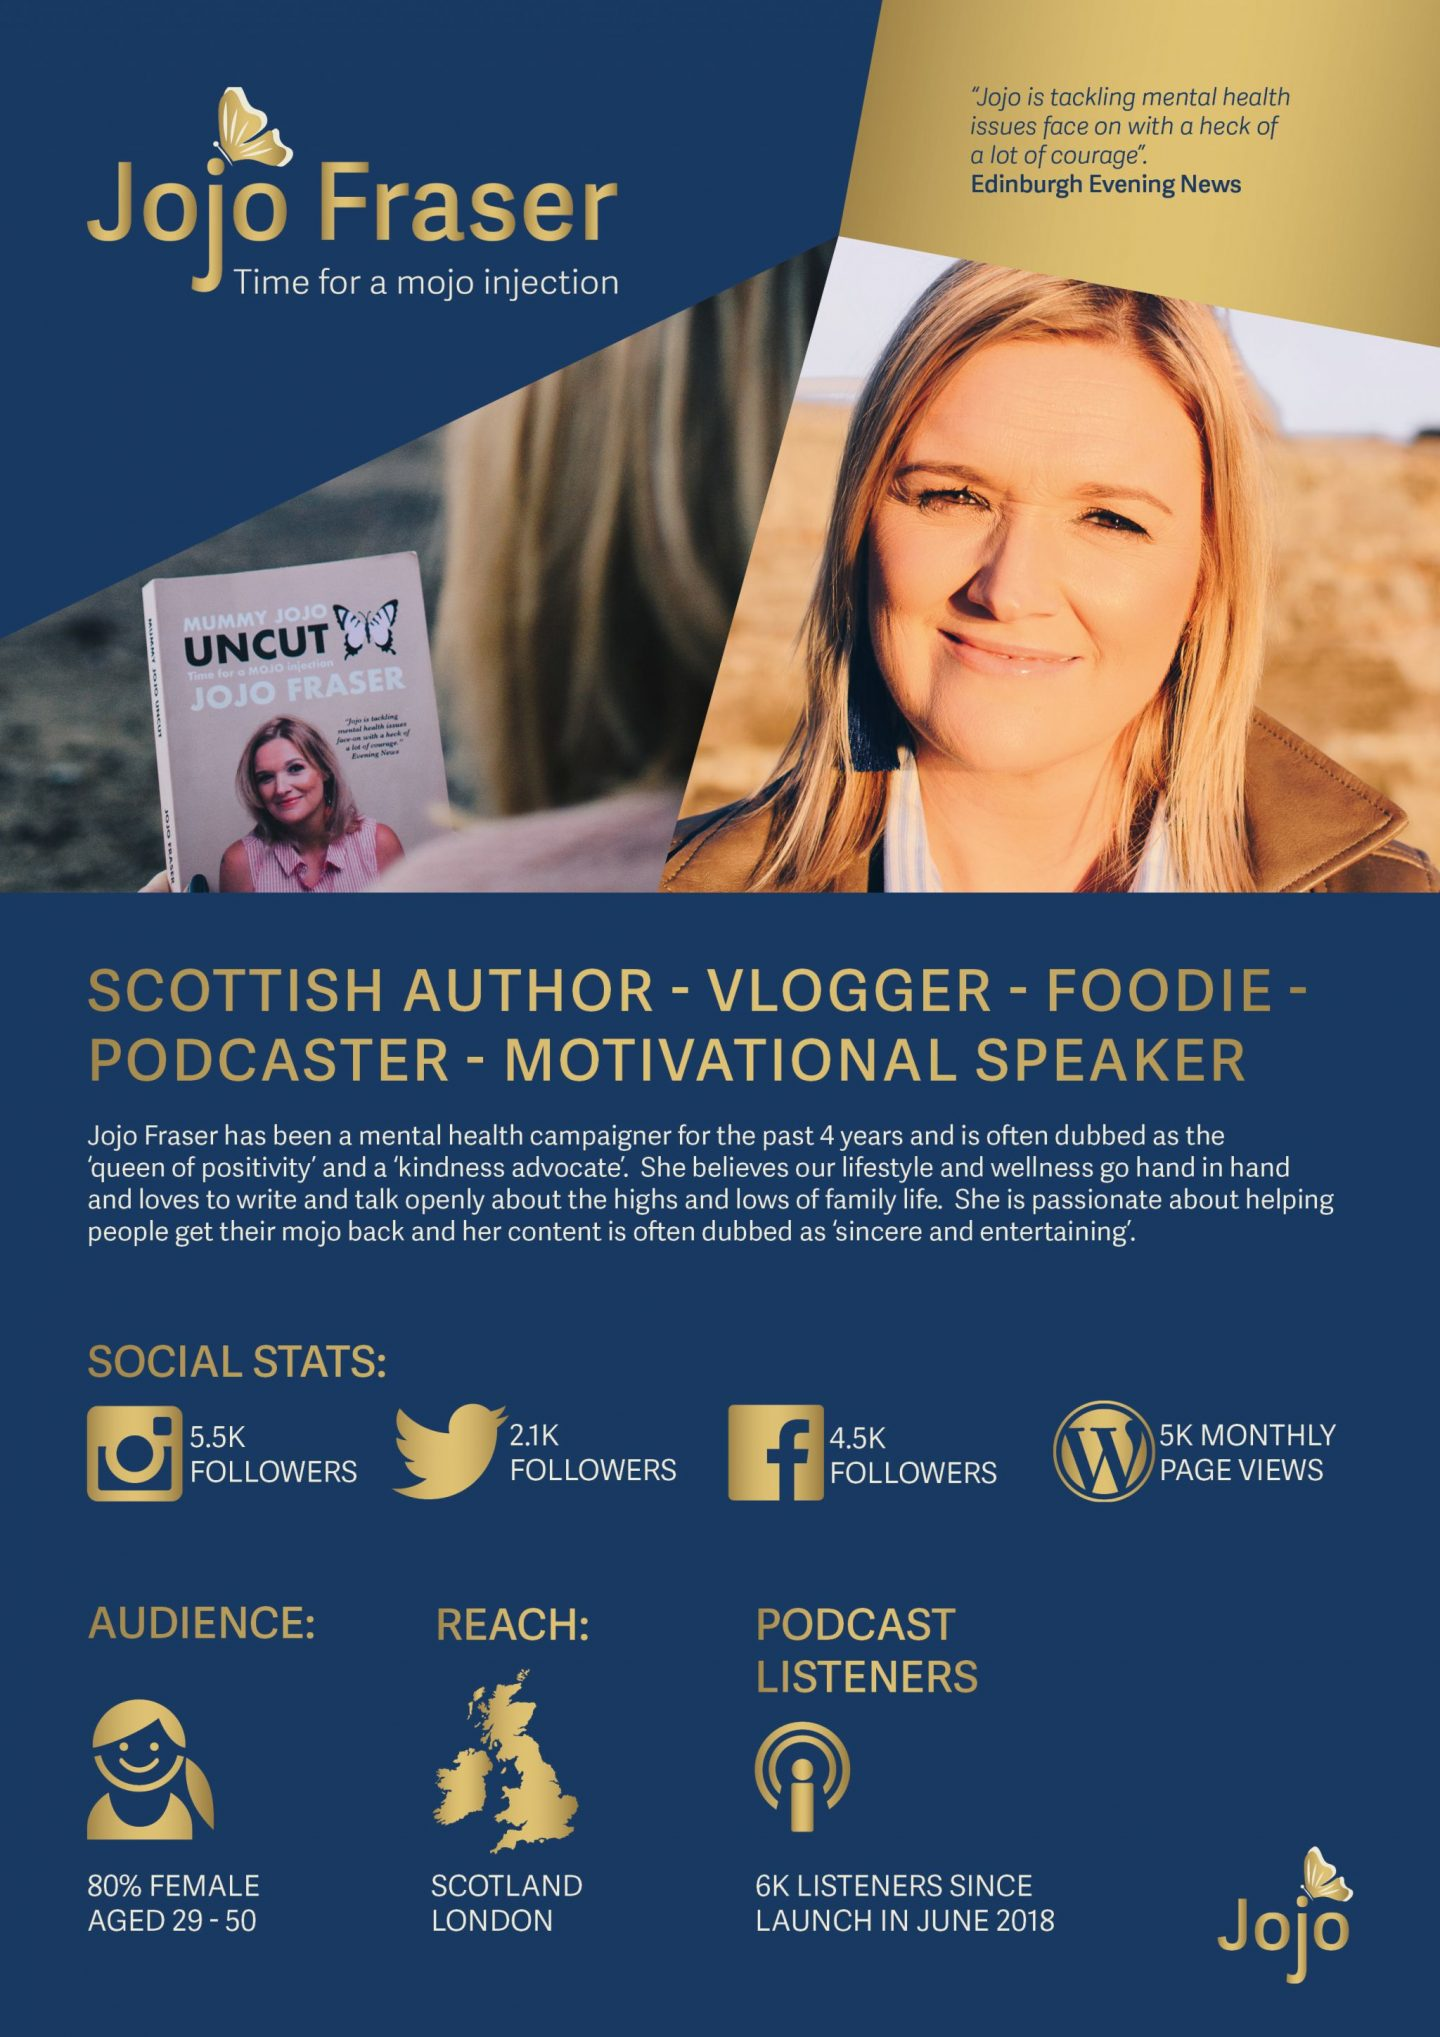 Jojo Fraser - Scottish author, blogger and motivational speaker